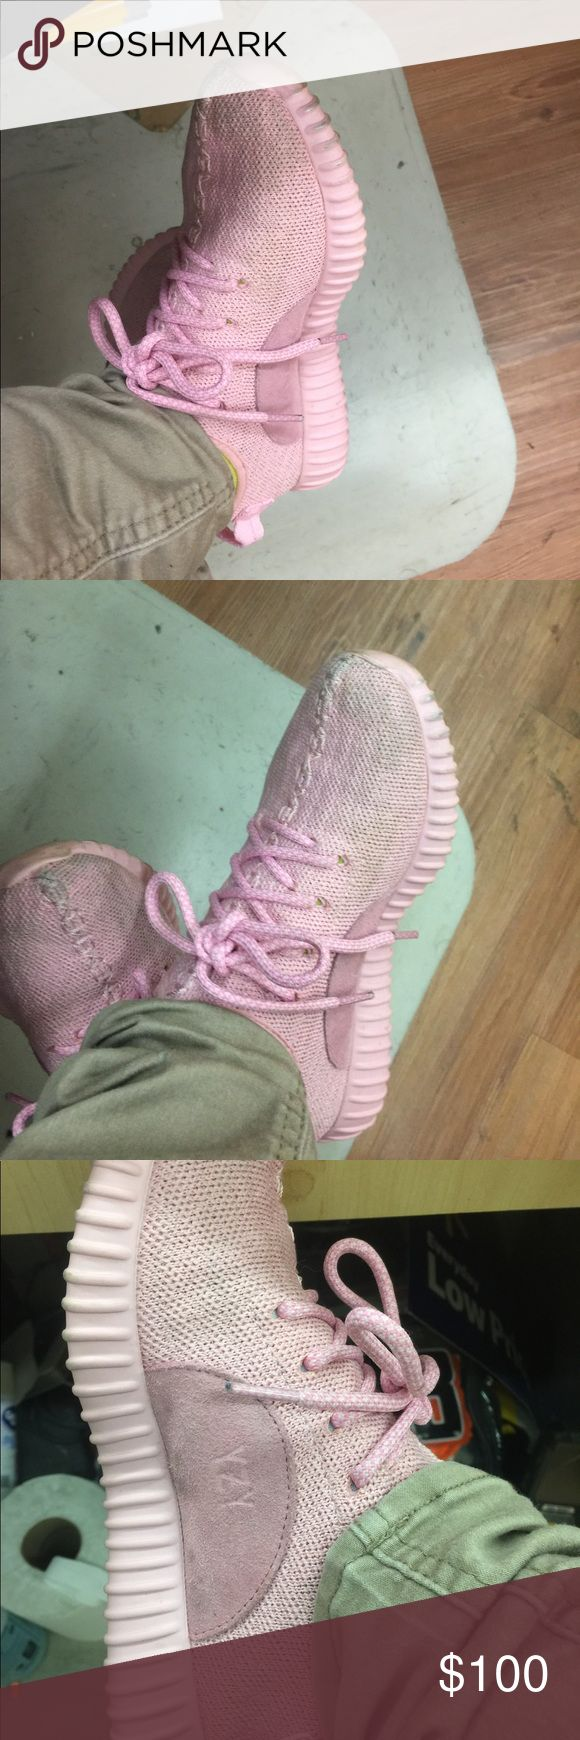 Pink yeezy boosts Pink addidas yeezy boosts need to me washed, only worn a few times Yeezy Shoes Sneakers